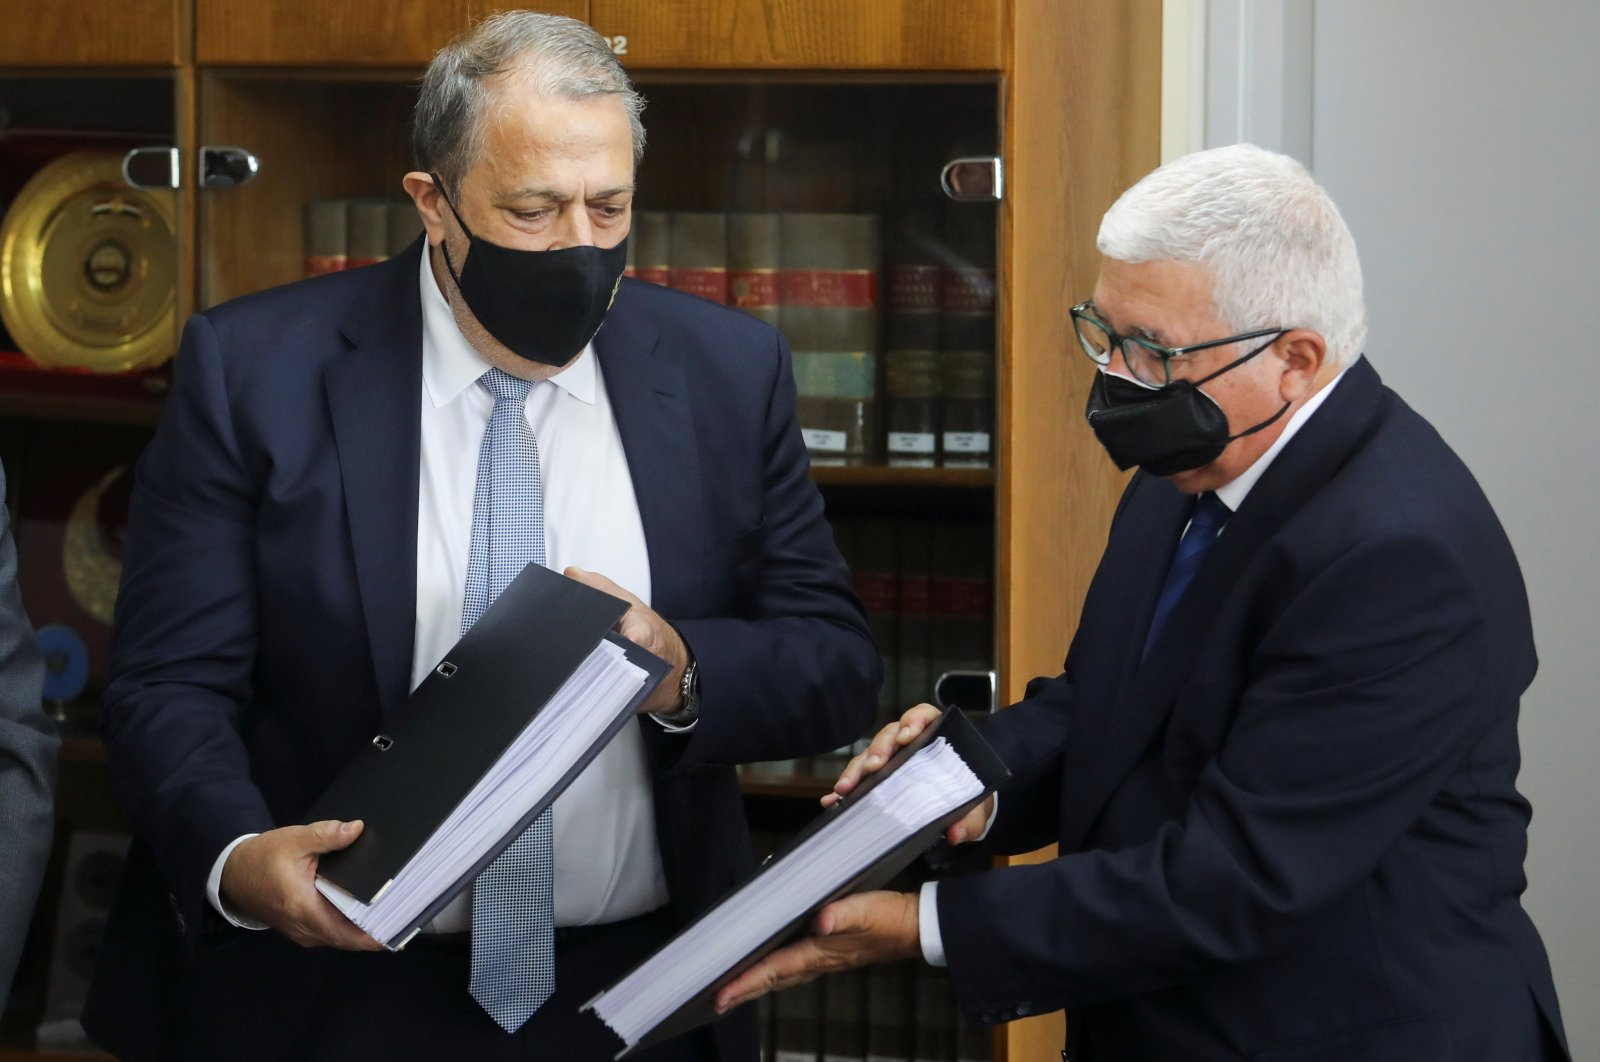 Myron Nicolatos, a former chief justice for the Greek Cypriot administration and head of a commission investigating a discredited cash-for-passports scheme, hands over findings to the country's attorney general Georgios Savvides in Nicosia, Greek Cypriot administration, June 7, 2021. (Reuters Photo)